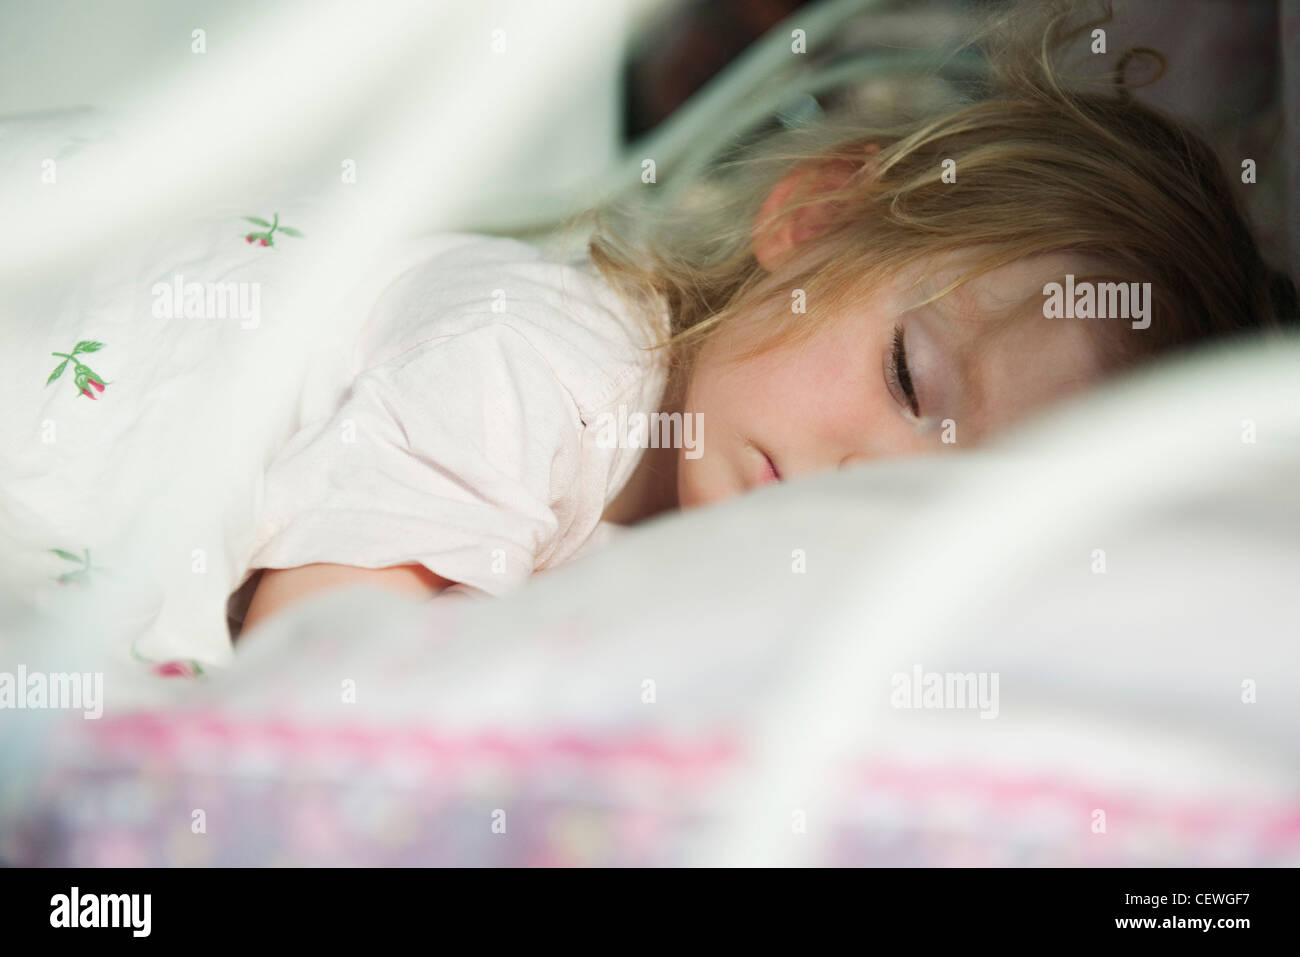 Toddler sleeping, obscured face - Stock Image